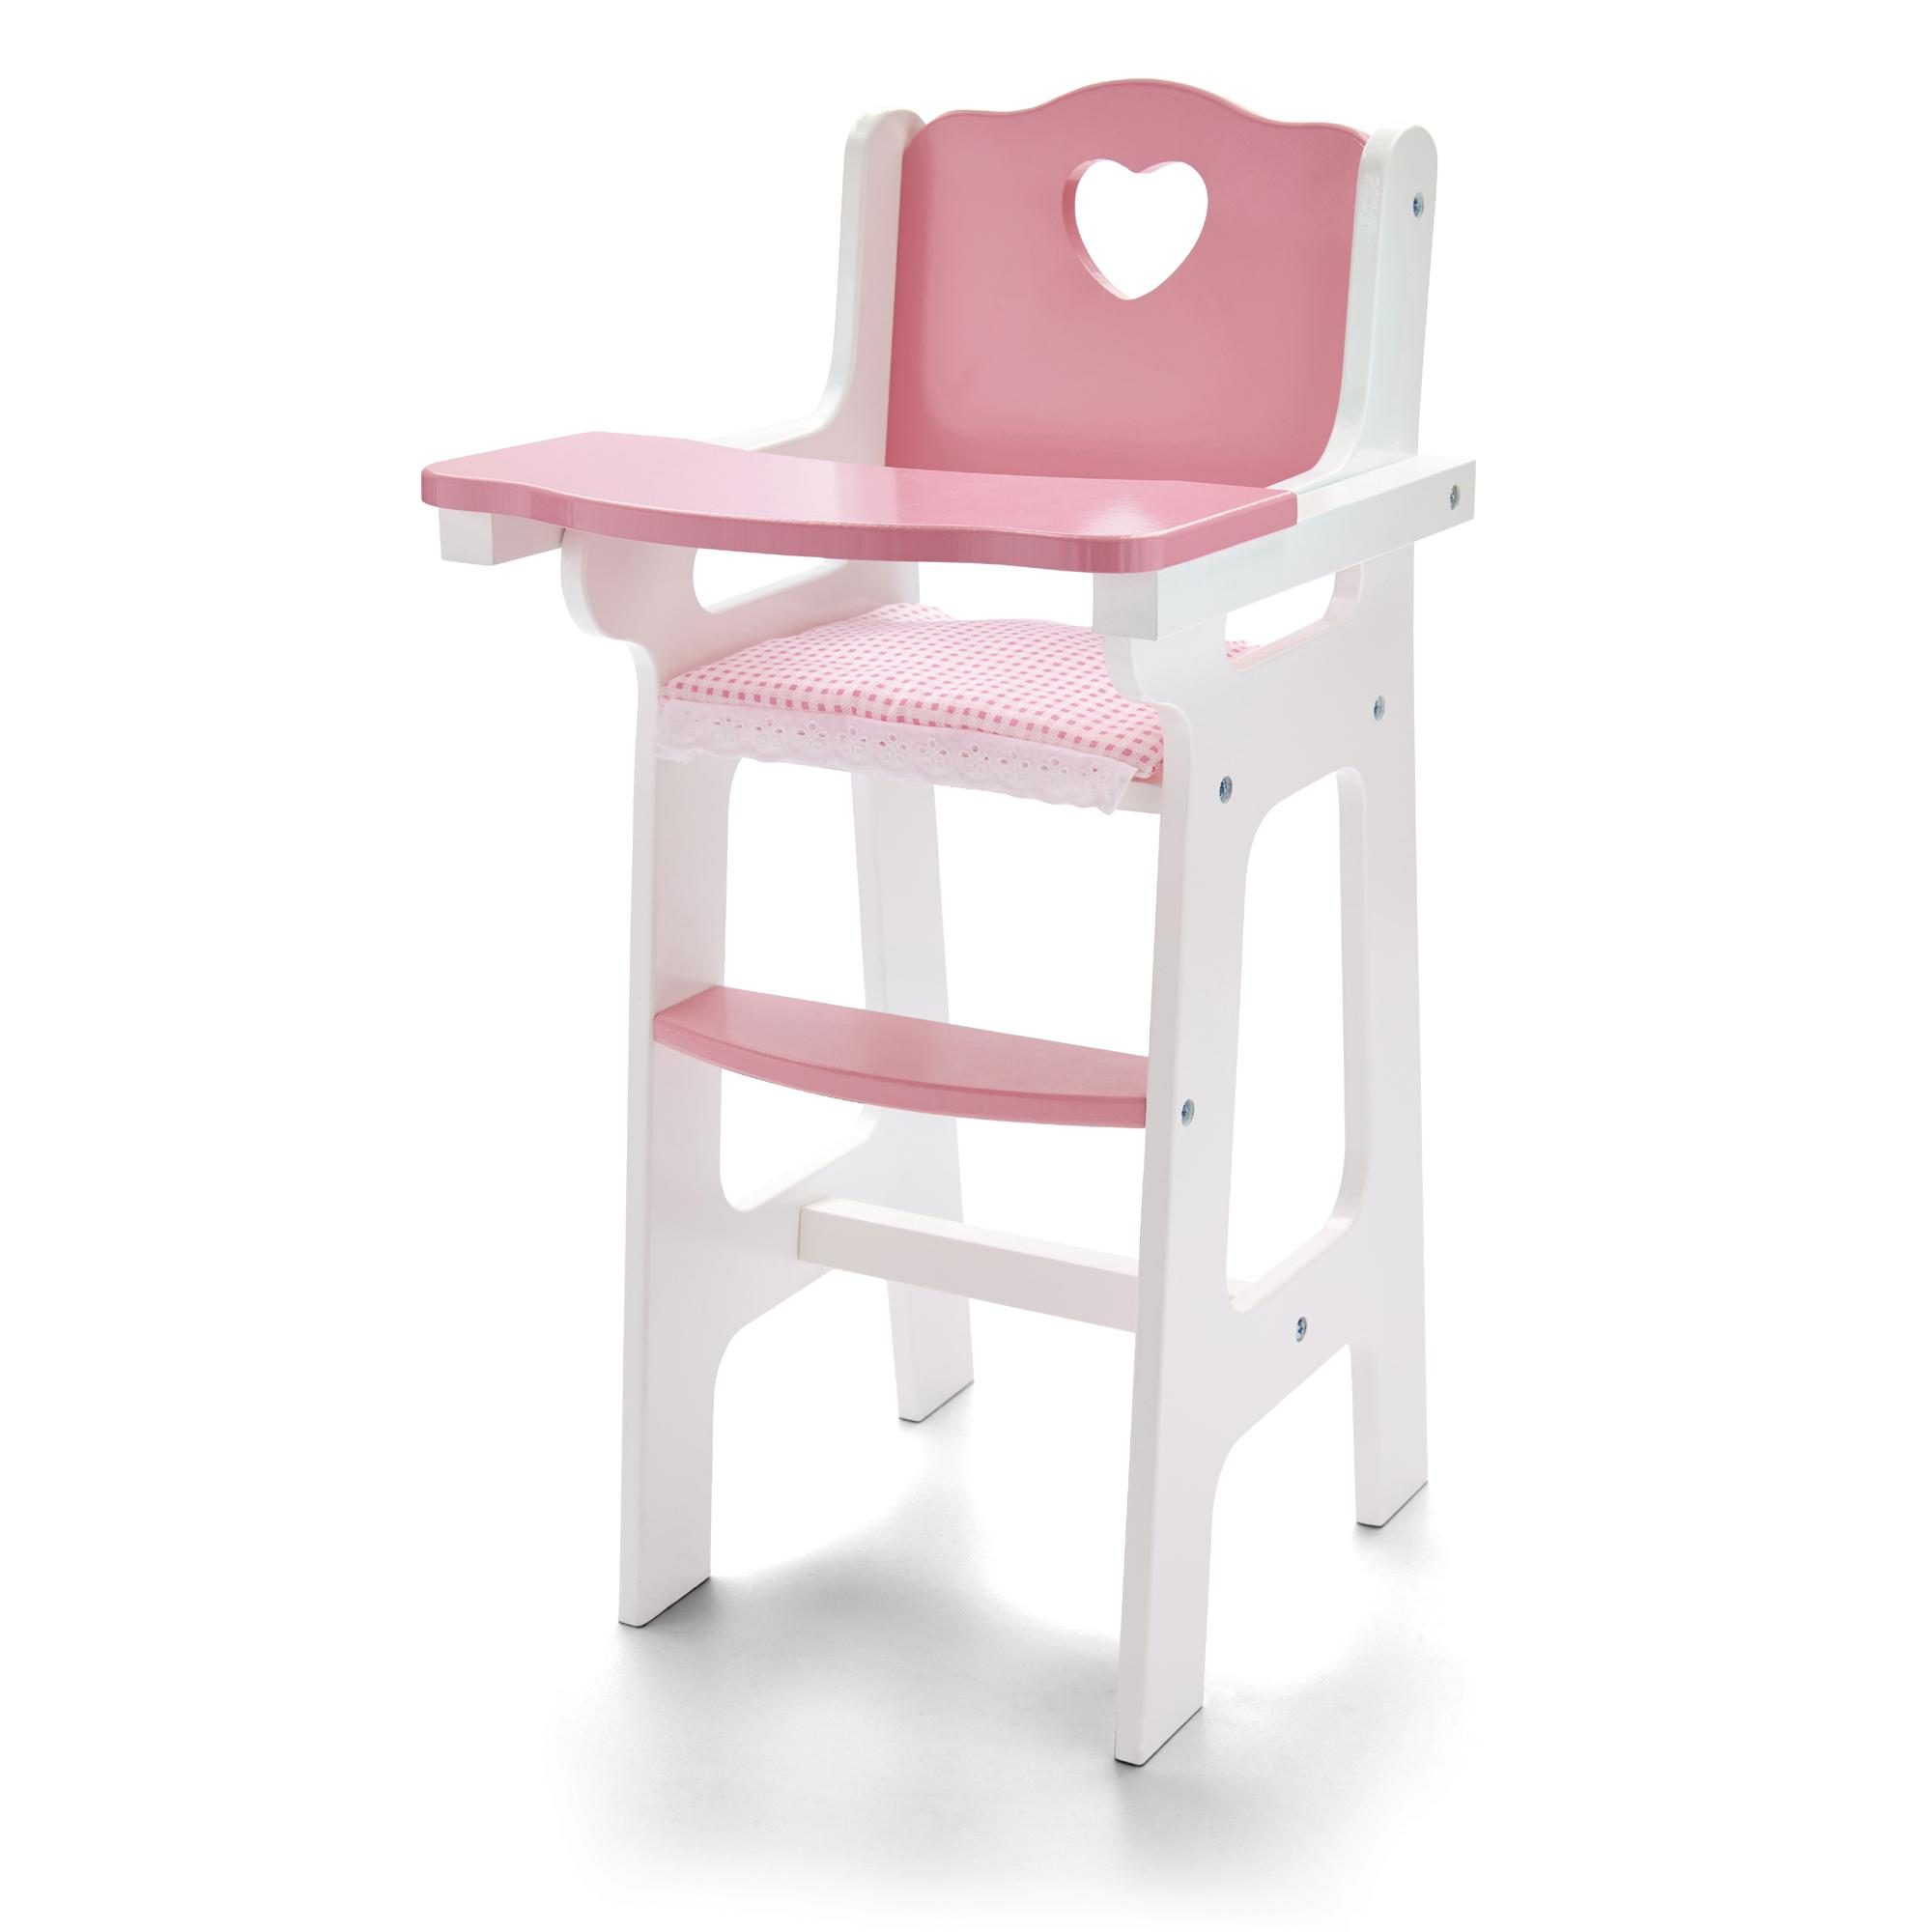 High Chair Toy Holder : Molly dolly my first dolls wooden high chair feeding doll